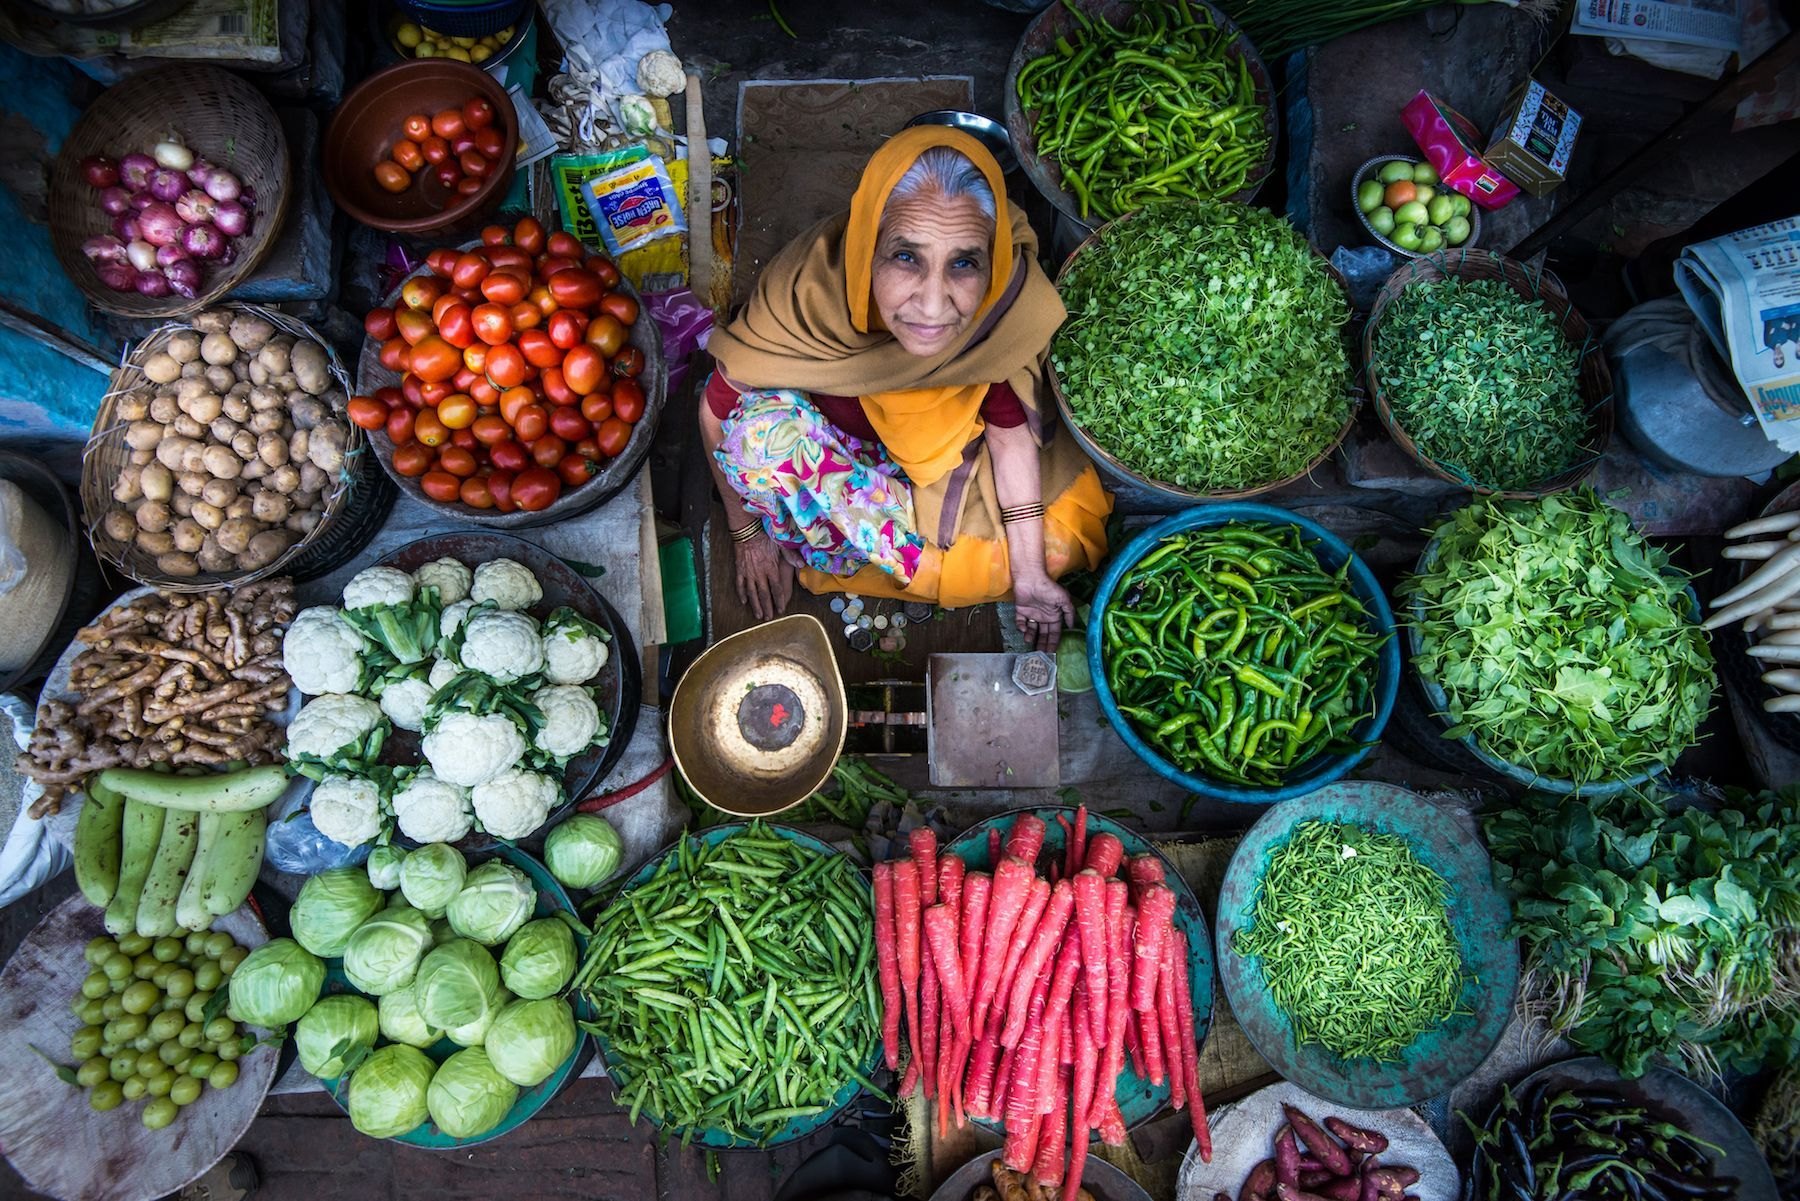 A vegetable vendor poses with her produce in Jodhpur, Rajasthan, India. She has set up shop in the same spot every day for more than thirty years, her grandson told Your Shot photographer Steve Demeranville.